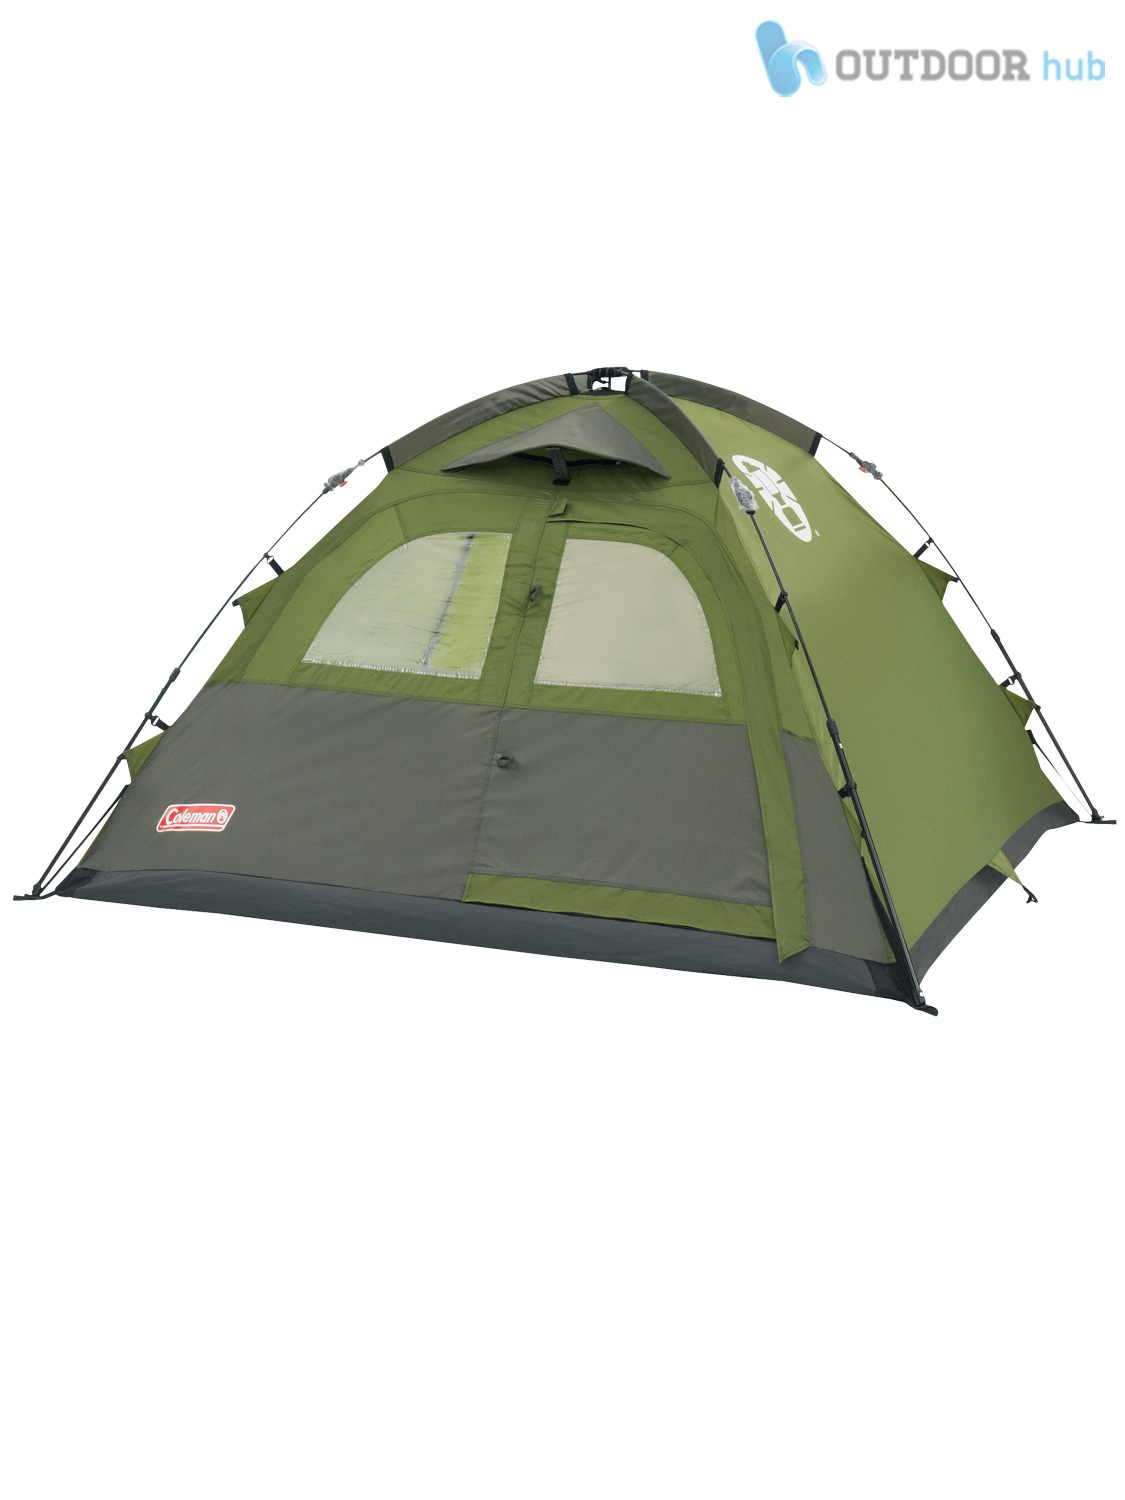 coleman instant tent dome 3 man person pop up quick pitch camping family holiday ebay. Black Bedroom Furniture Sets. Home Design Ideas